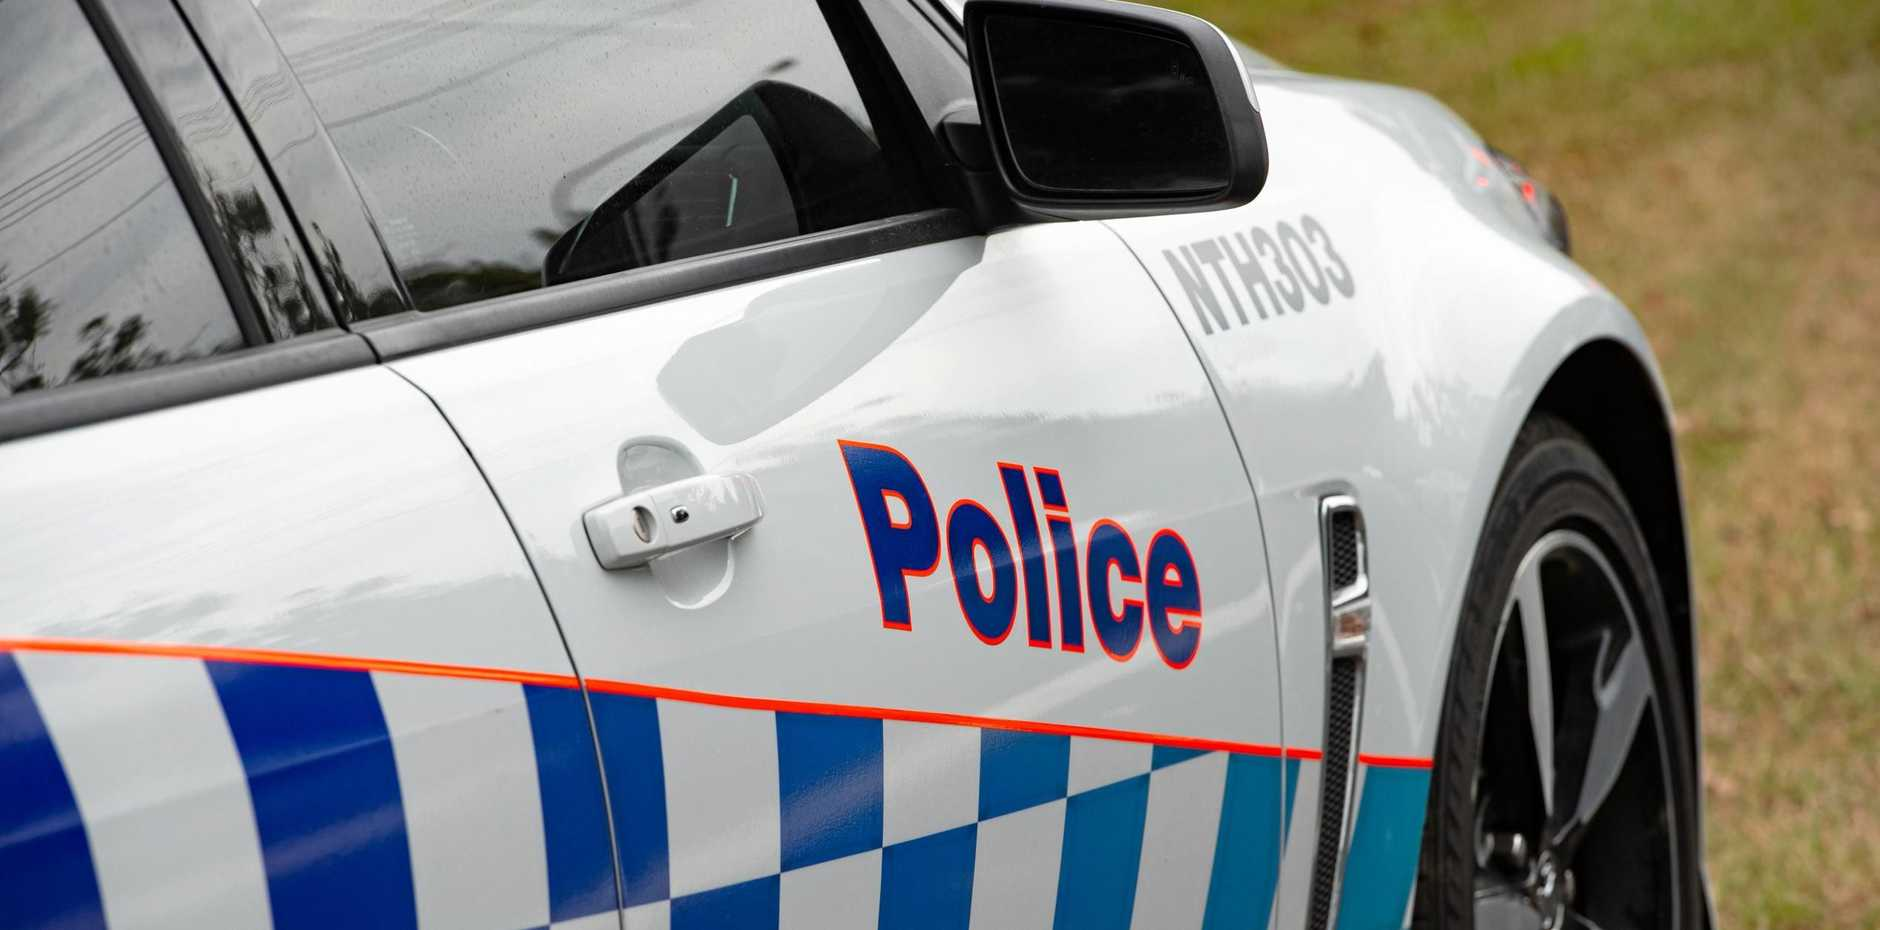 LOOKING: Police are on the hunt for two women in their 20s in relation to a violent carjacking attempt on Friday.